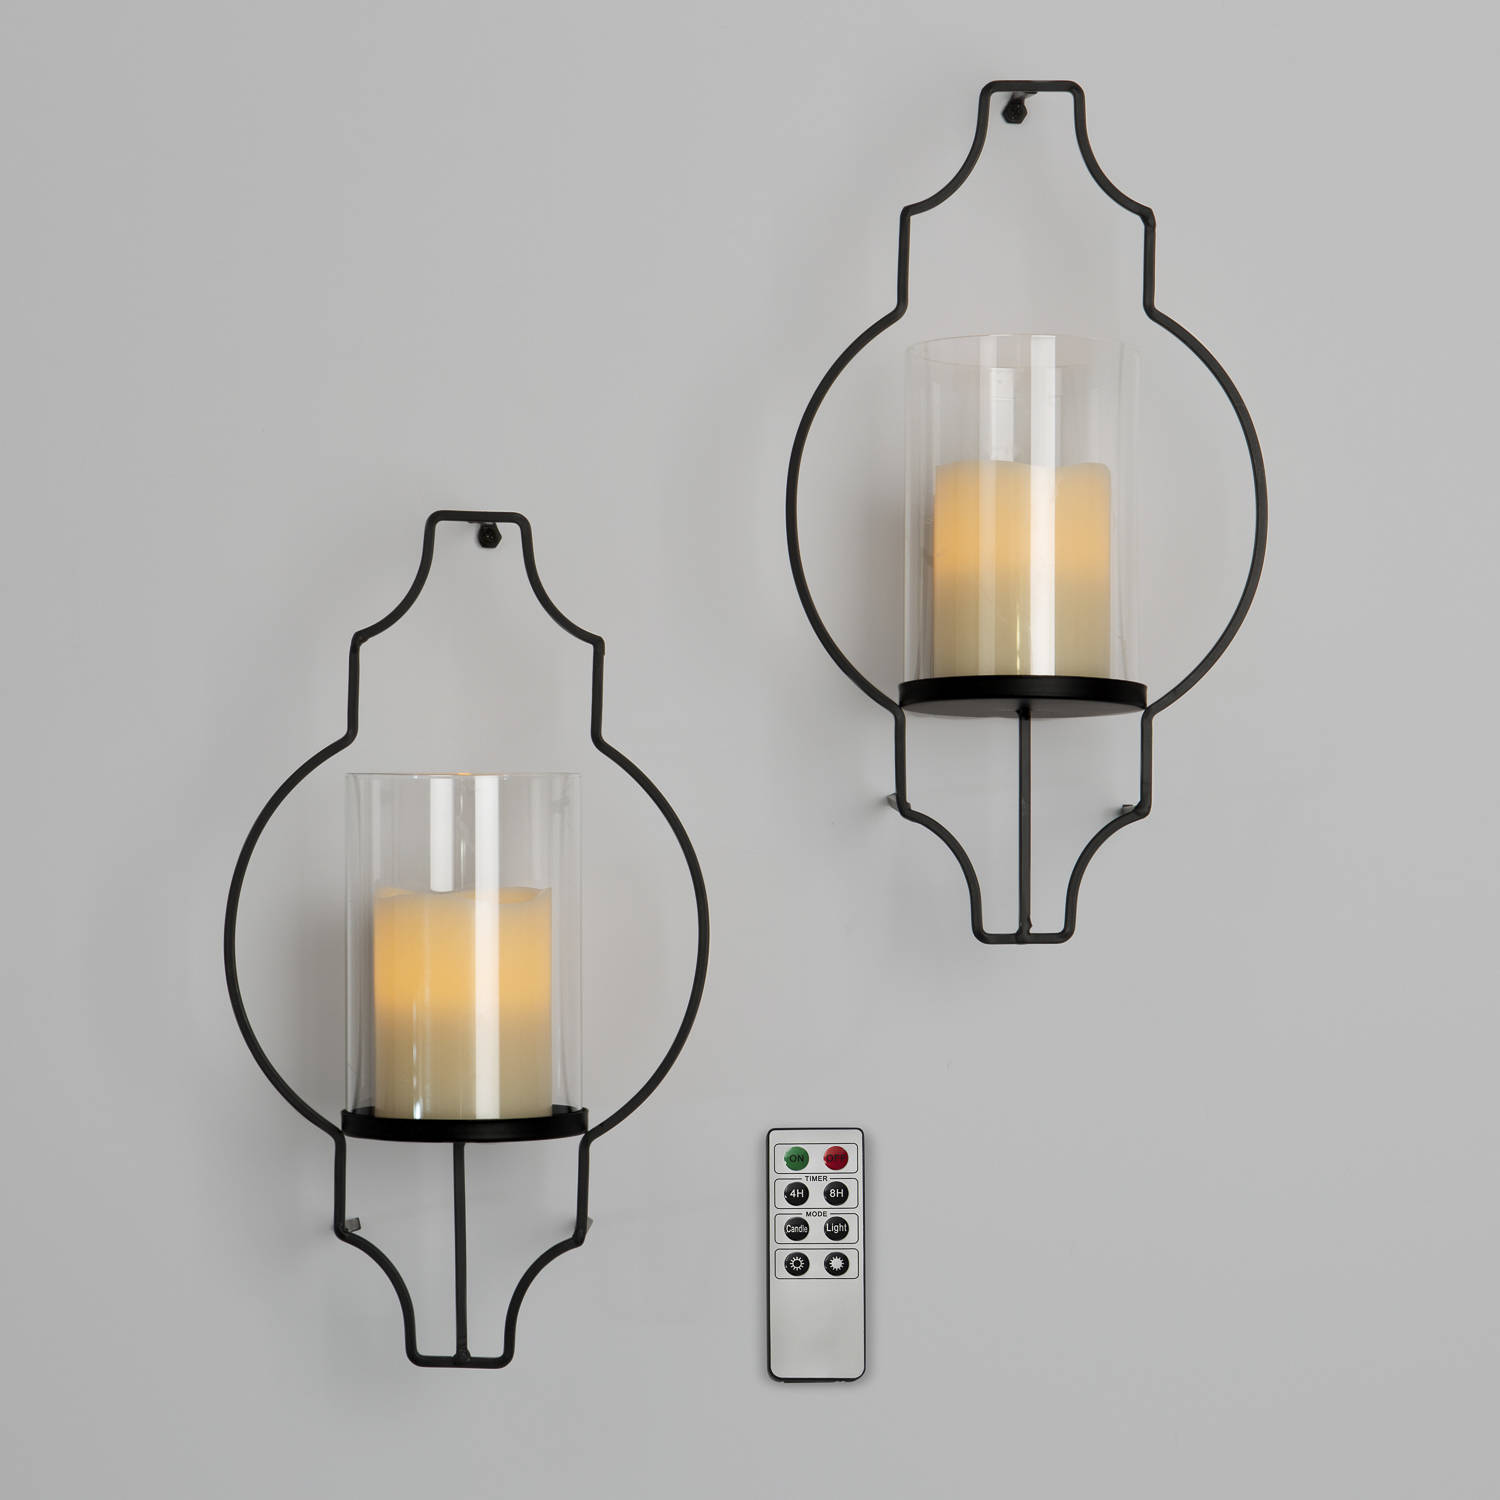 Candlestick Set Of 2 Wall Sconces With Flameless Candles : Lights.com Flameless Candles Pillar Candles Hurricane Glass Flameless Candle Wall Sconce ...